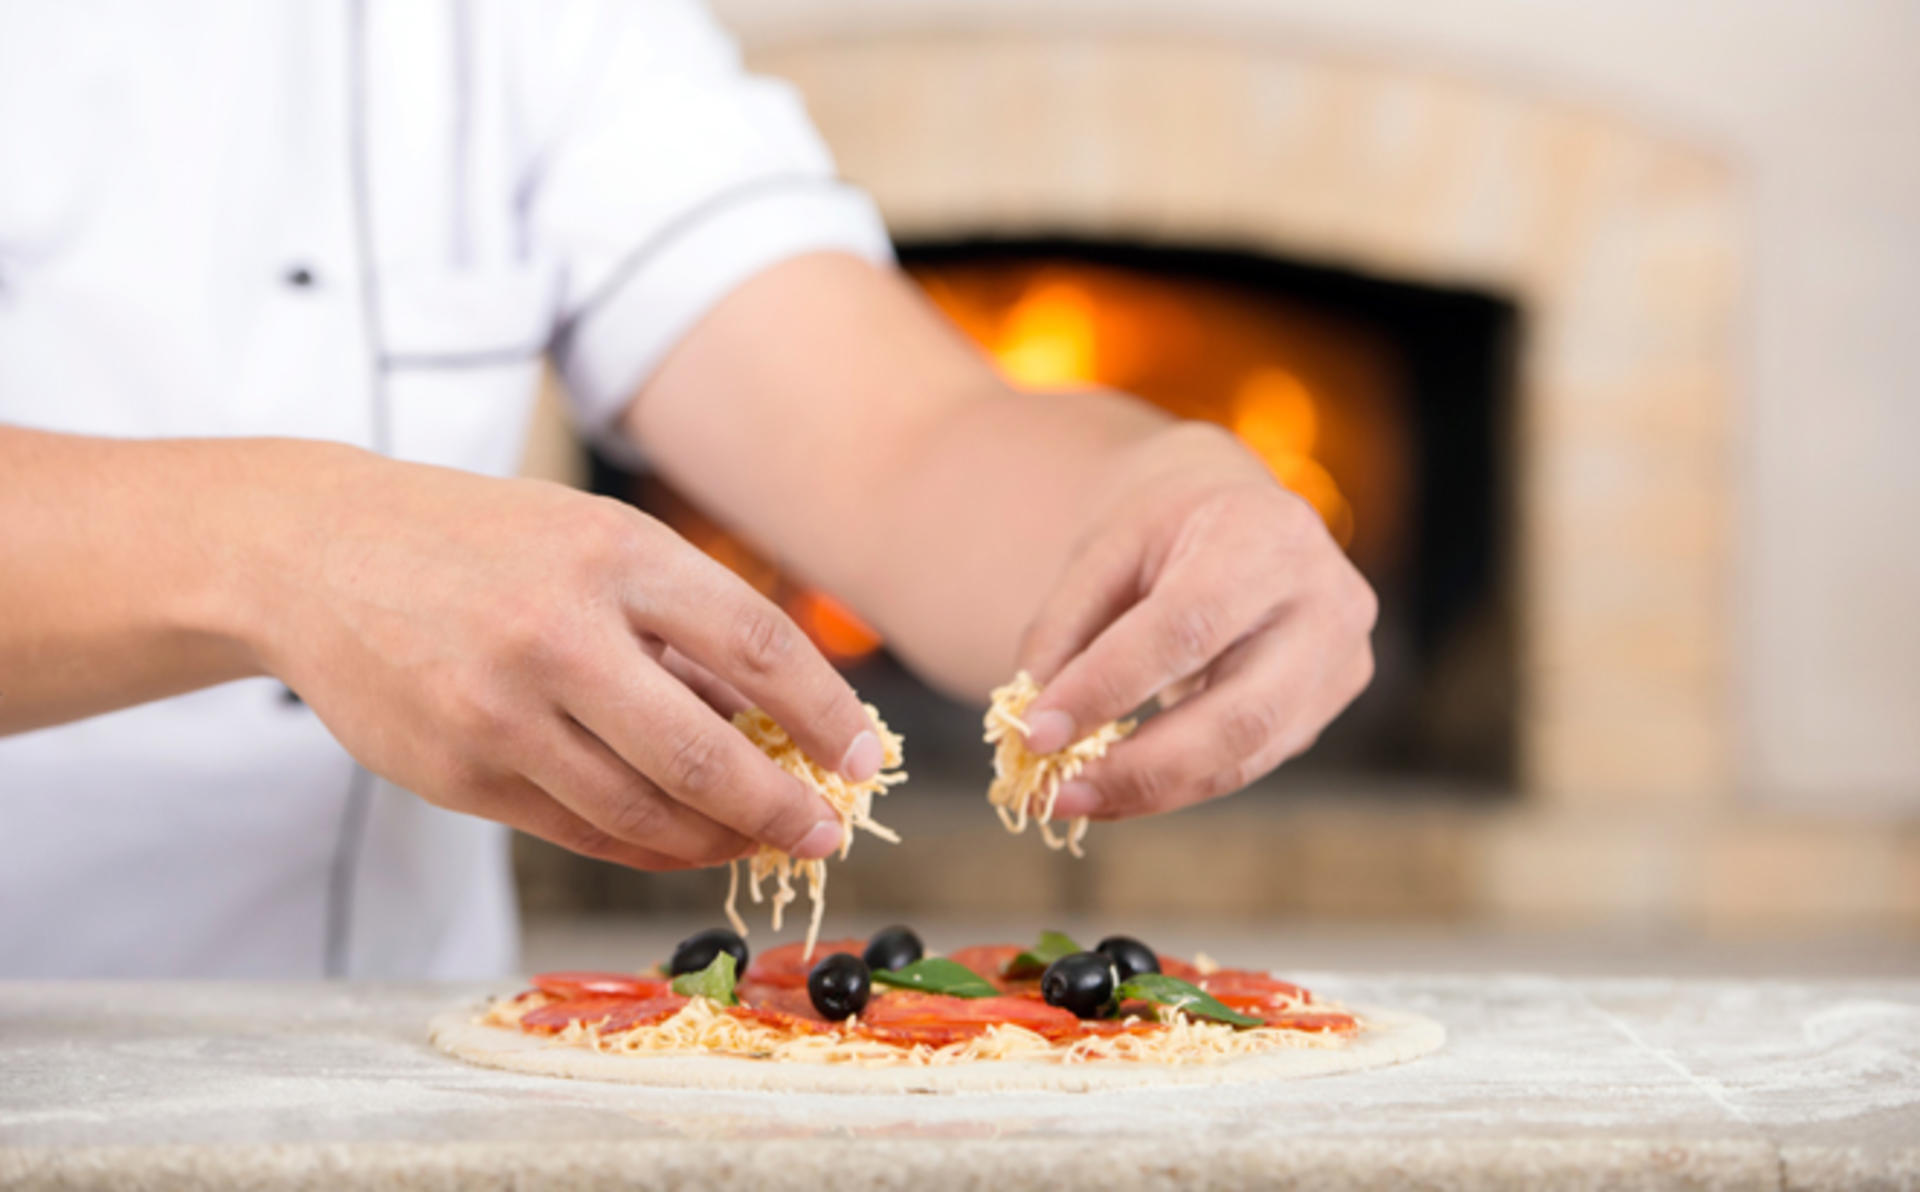 Lungarno_Pizza-Making-Course-for-One